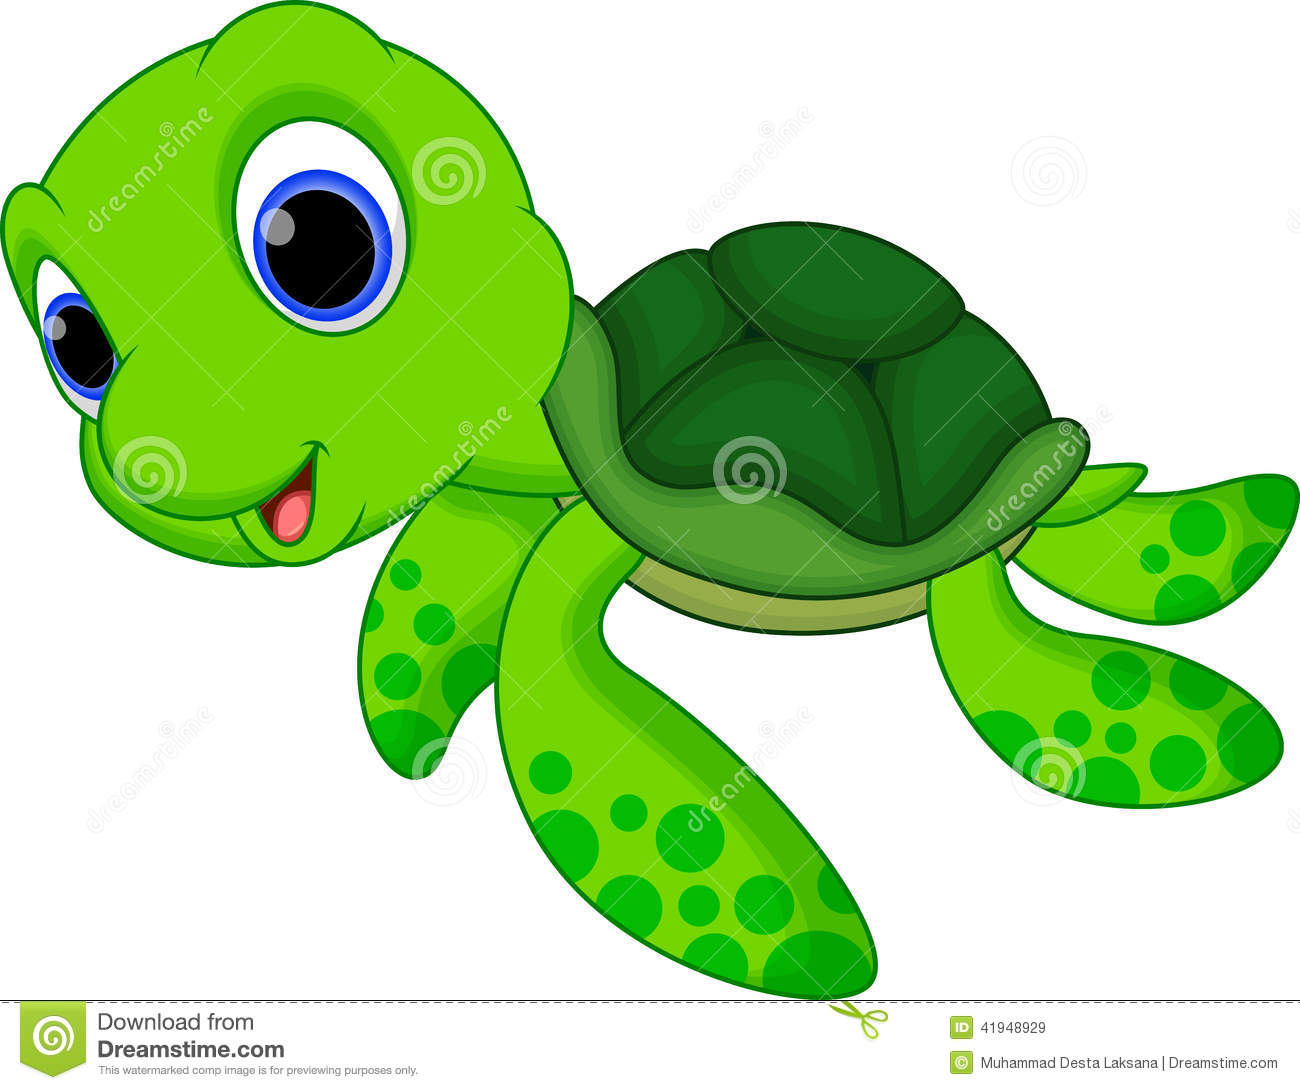 Marine Life clipart turtle swimming #1 Sea drawings clipart Turtle